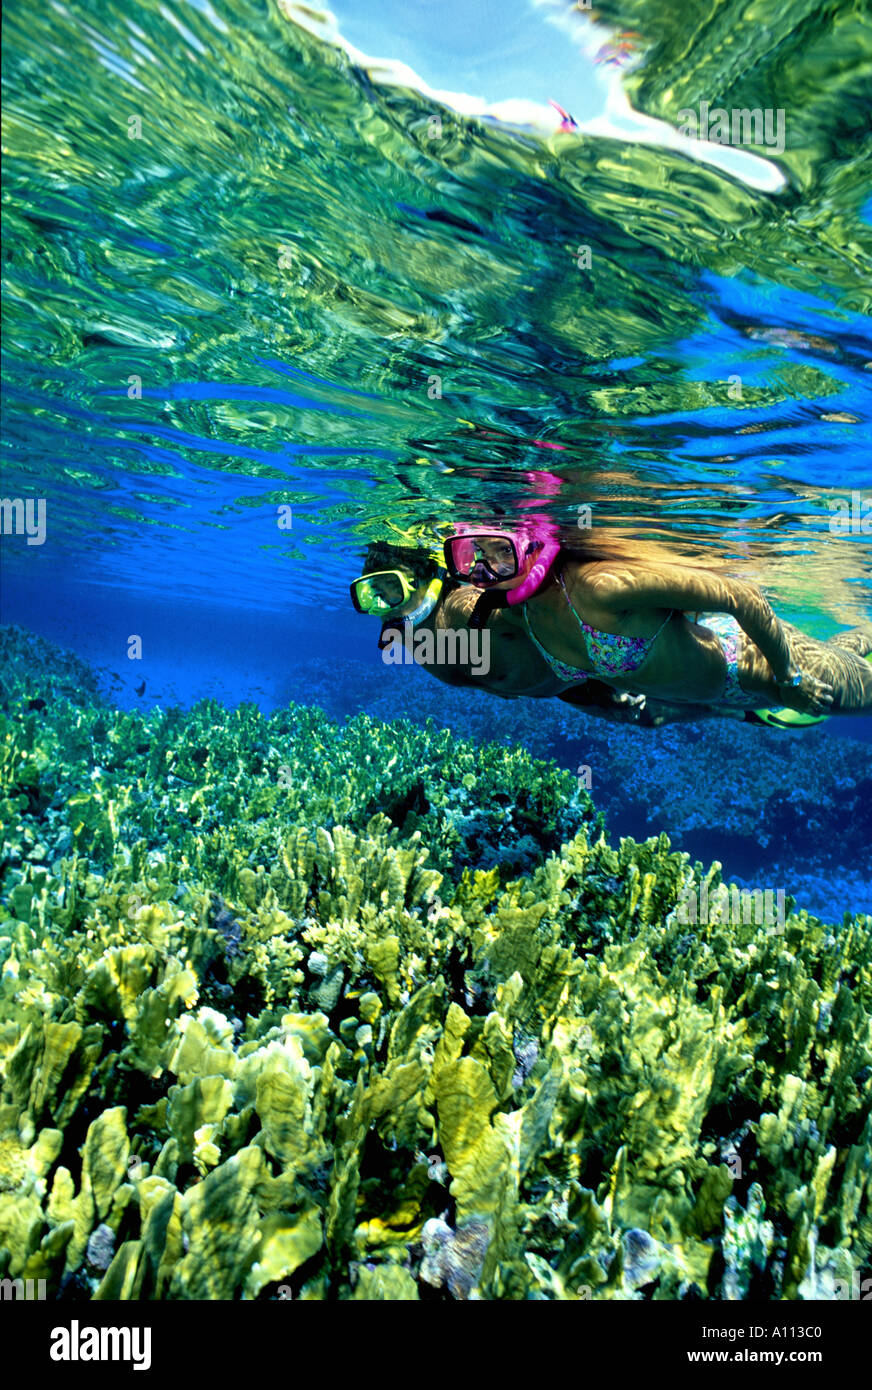 A PAIR OF SNORKELERS ON A REEF IN THE CLEAR WATERS OFF OF NEW PROVIDENCE IN THE BAHAMAS - Stock Image